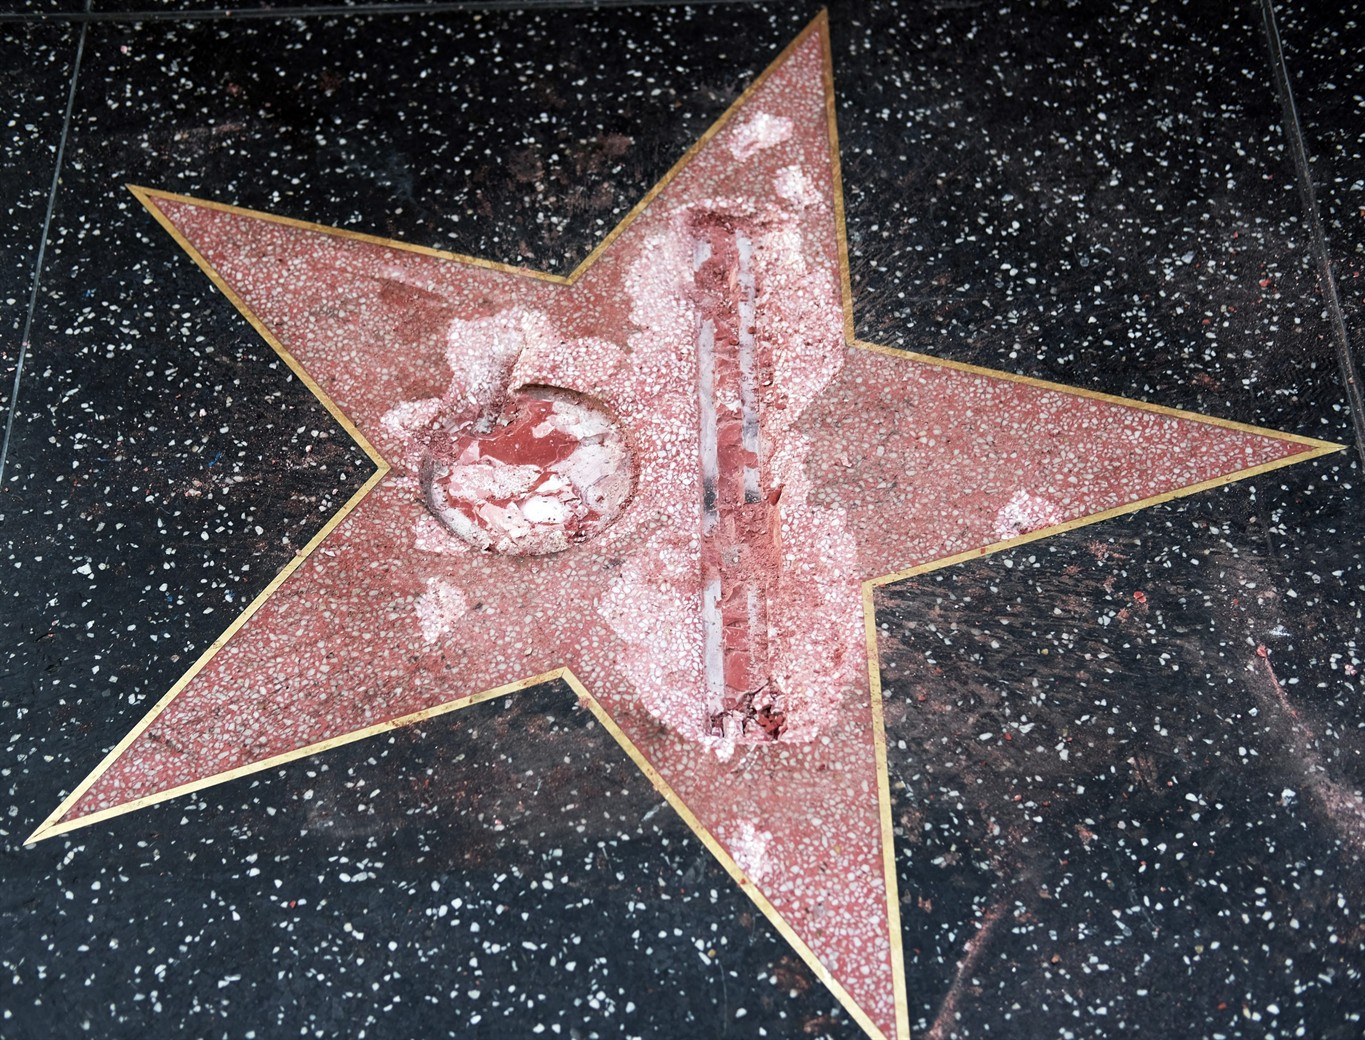 Woman sought in dust-up at Donald Trump's Hollywood star